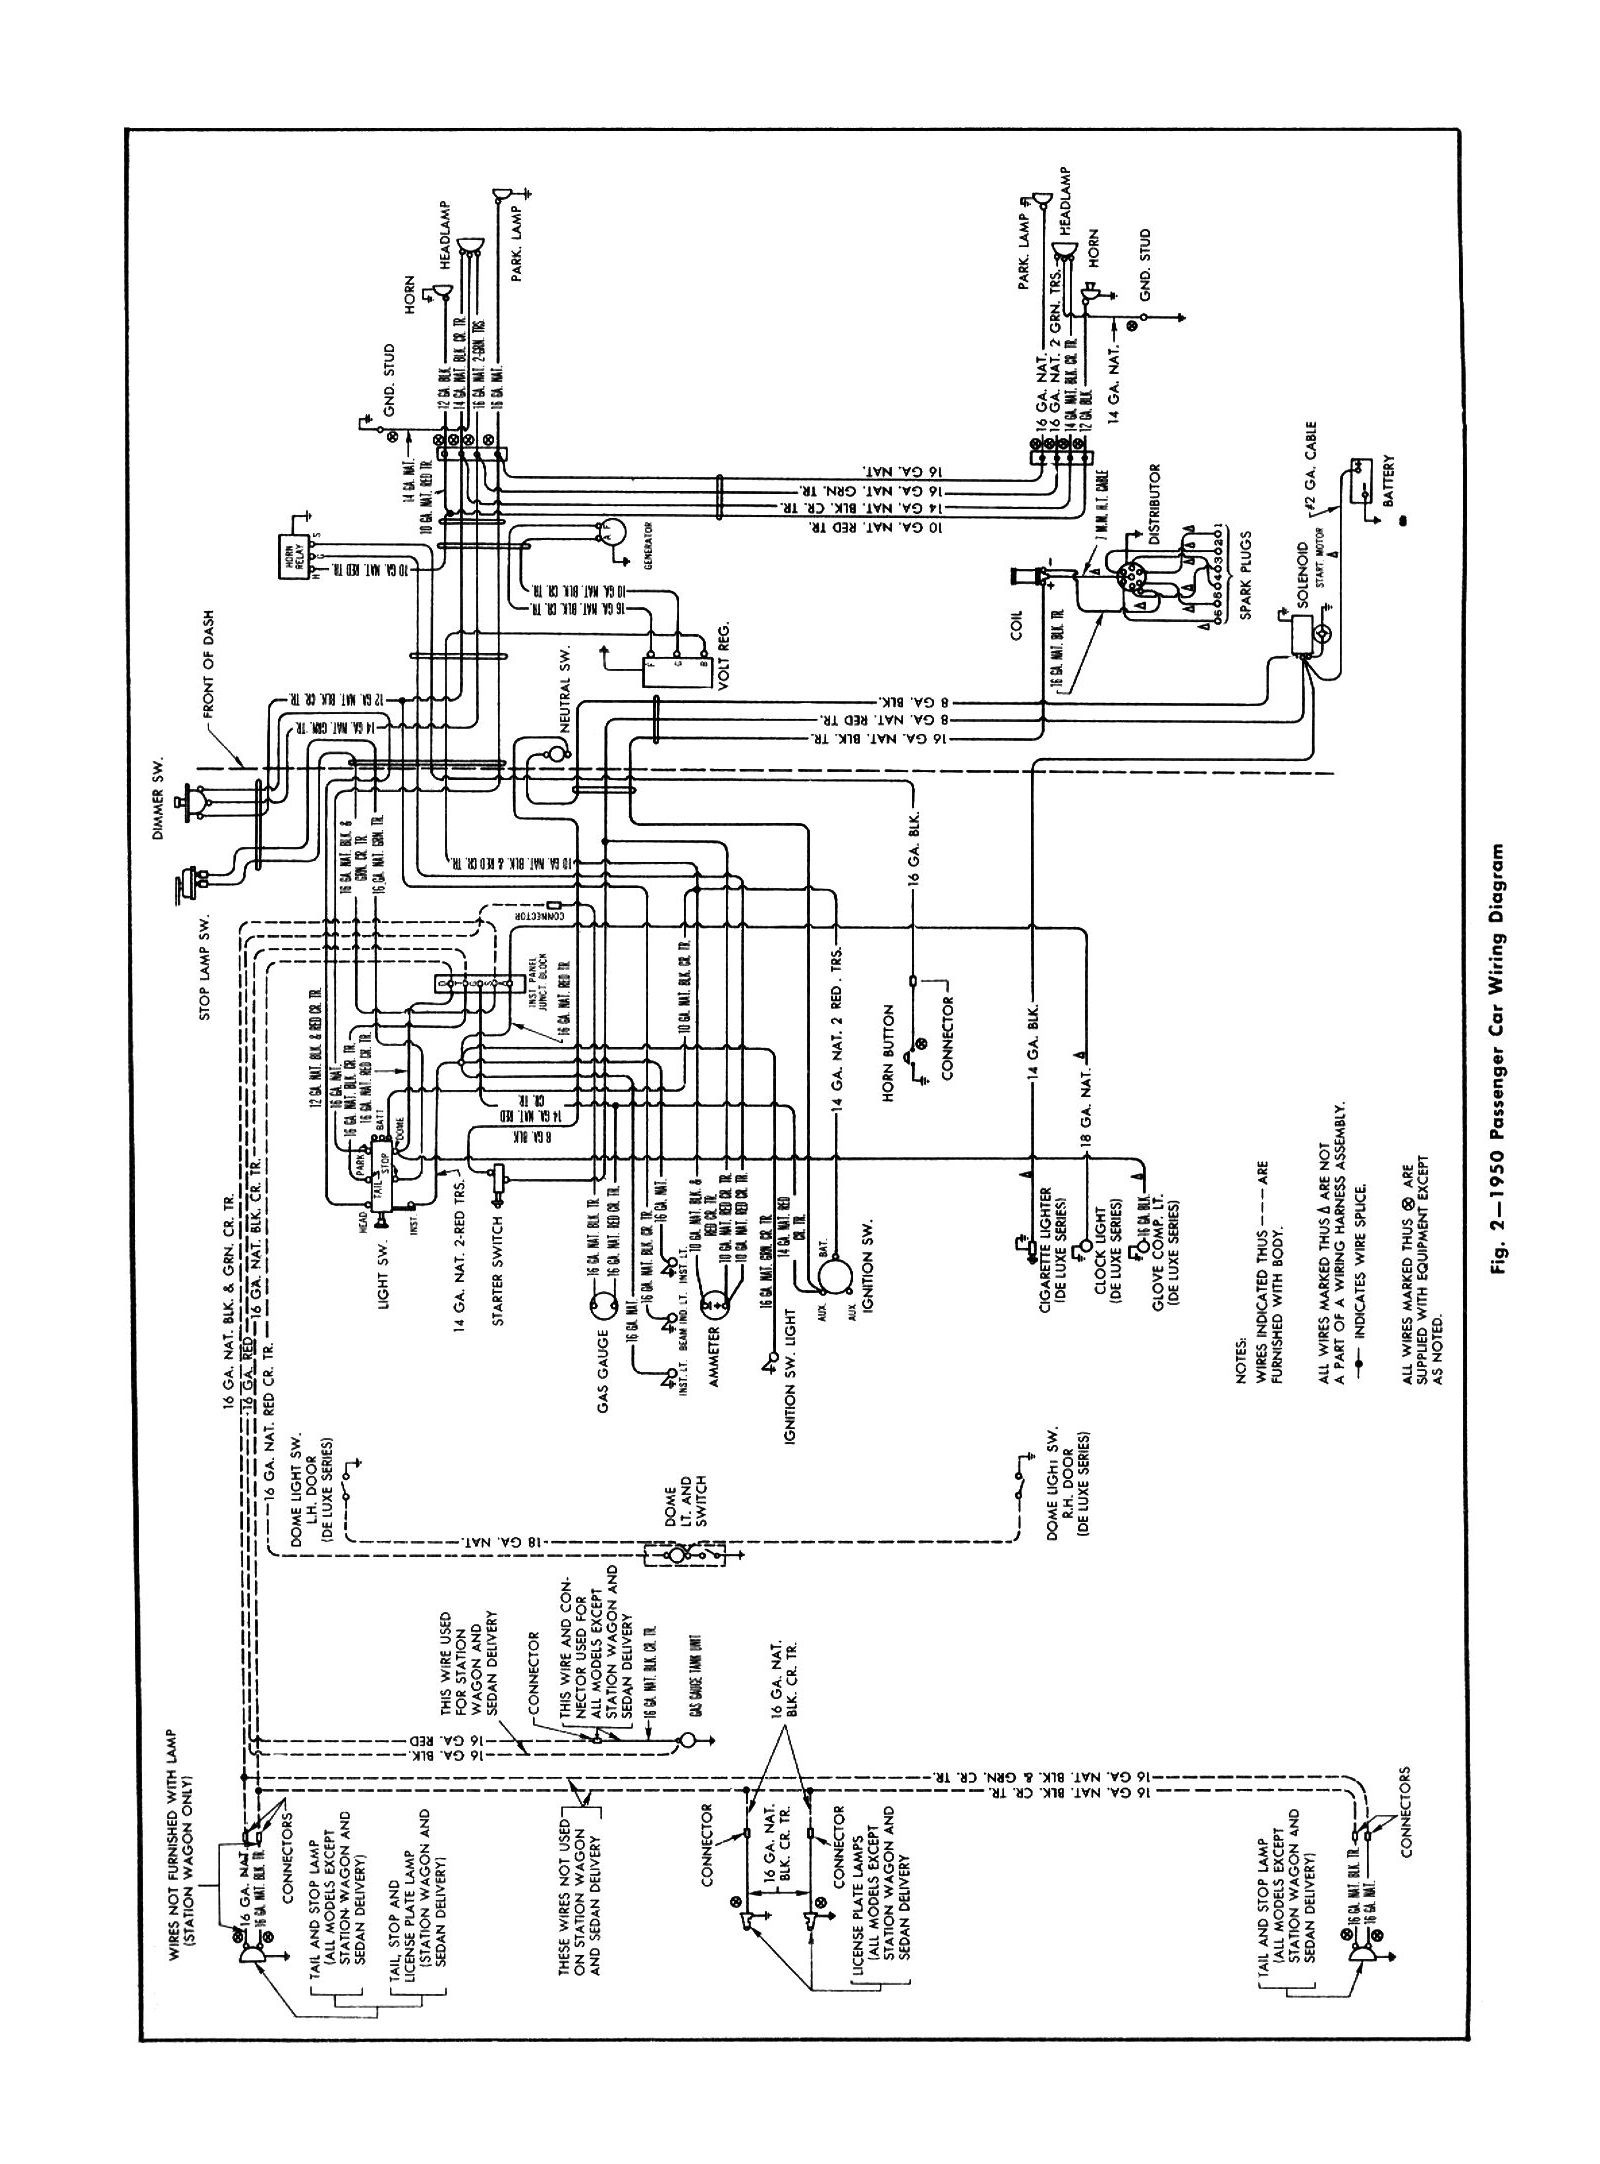 Chevy Wiring Diagrams - Chevy Wiring Harness Diagram